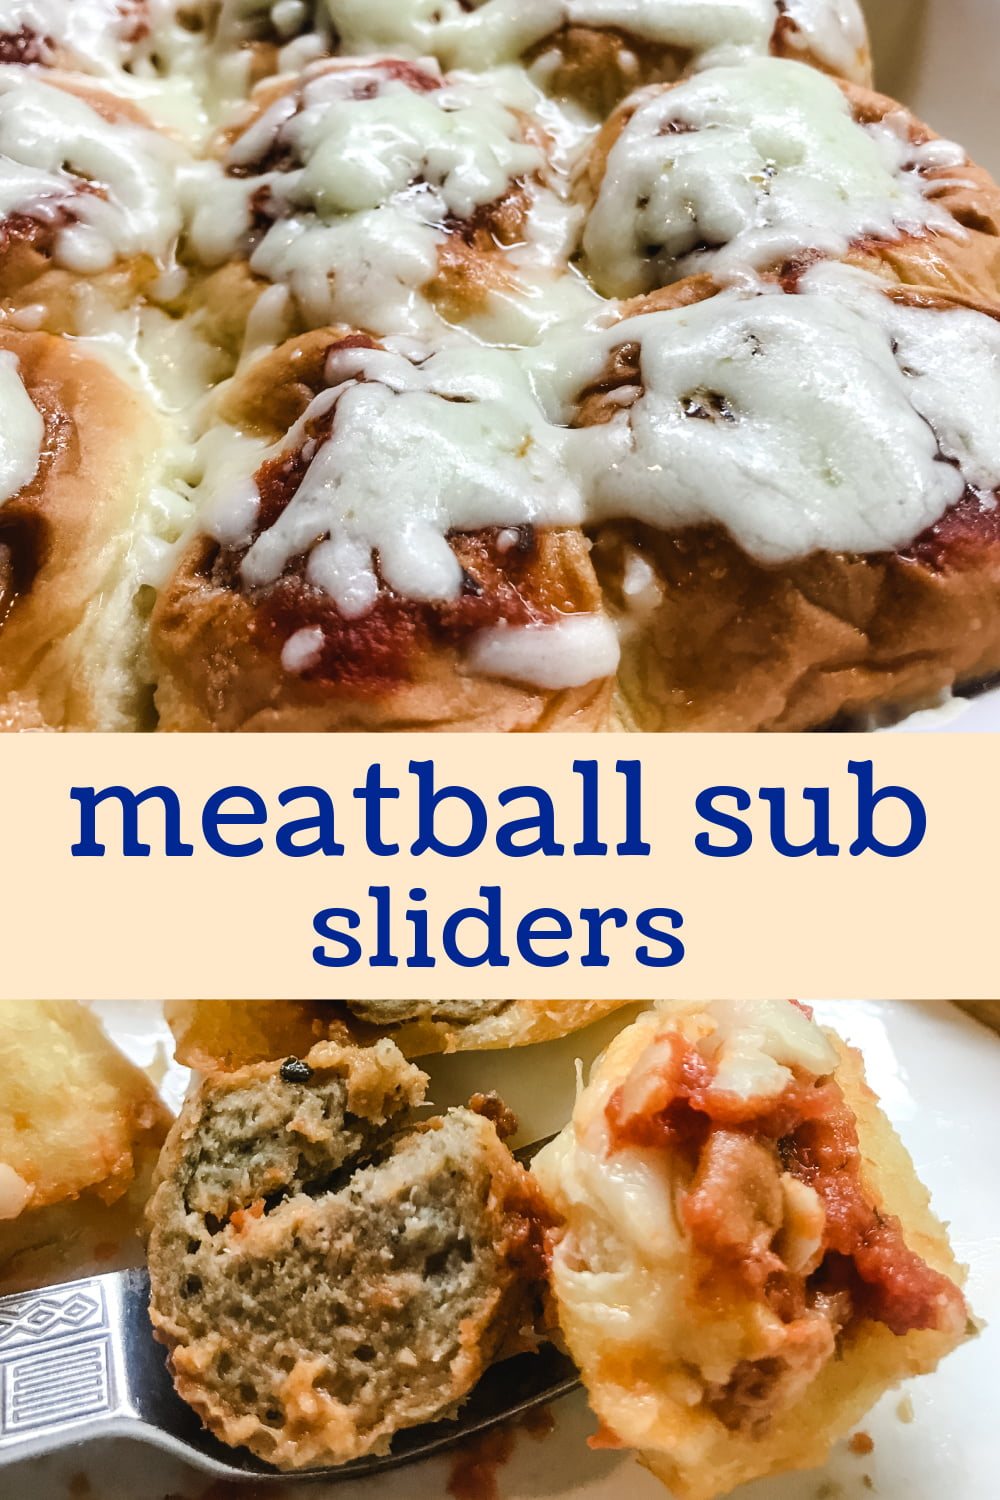 Cheesy meatball sliders in a baking pan.